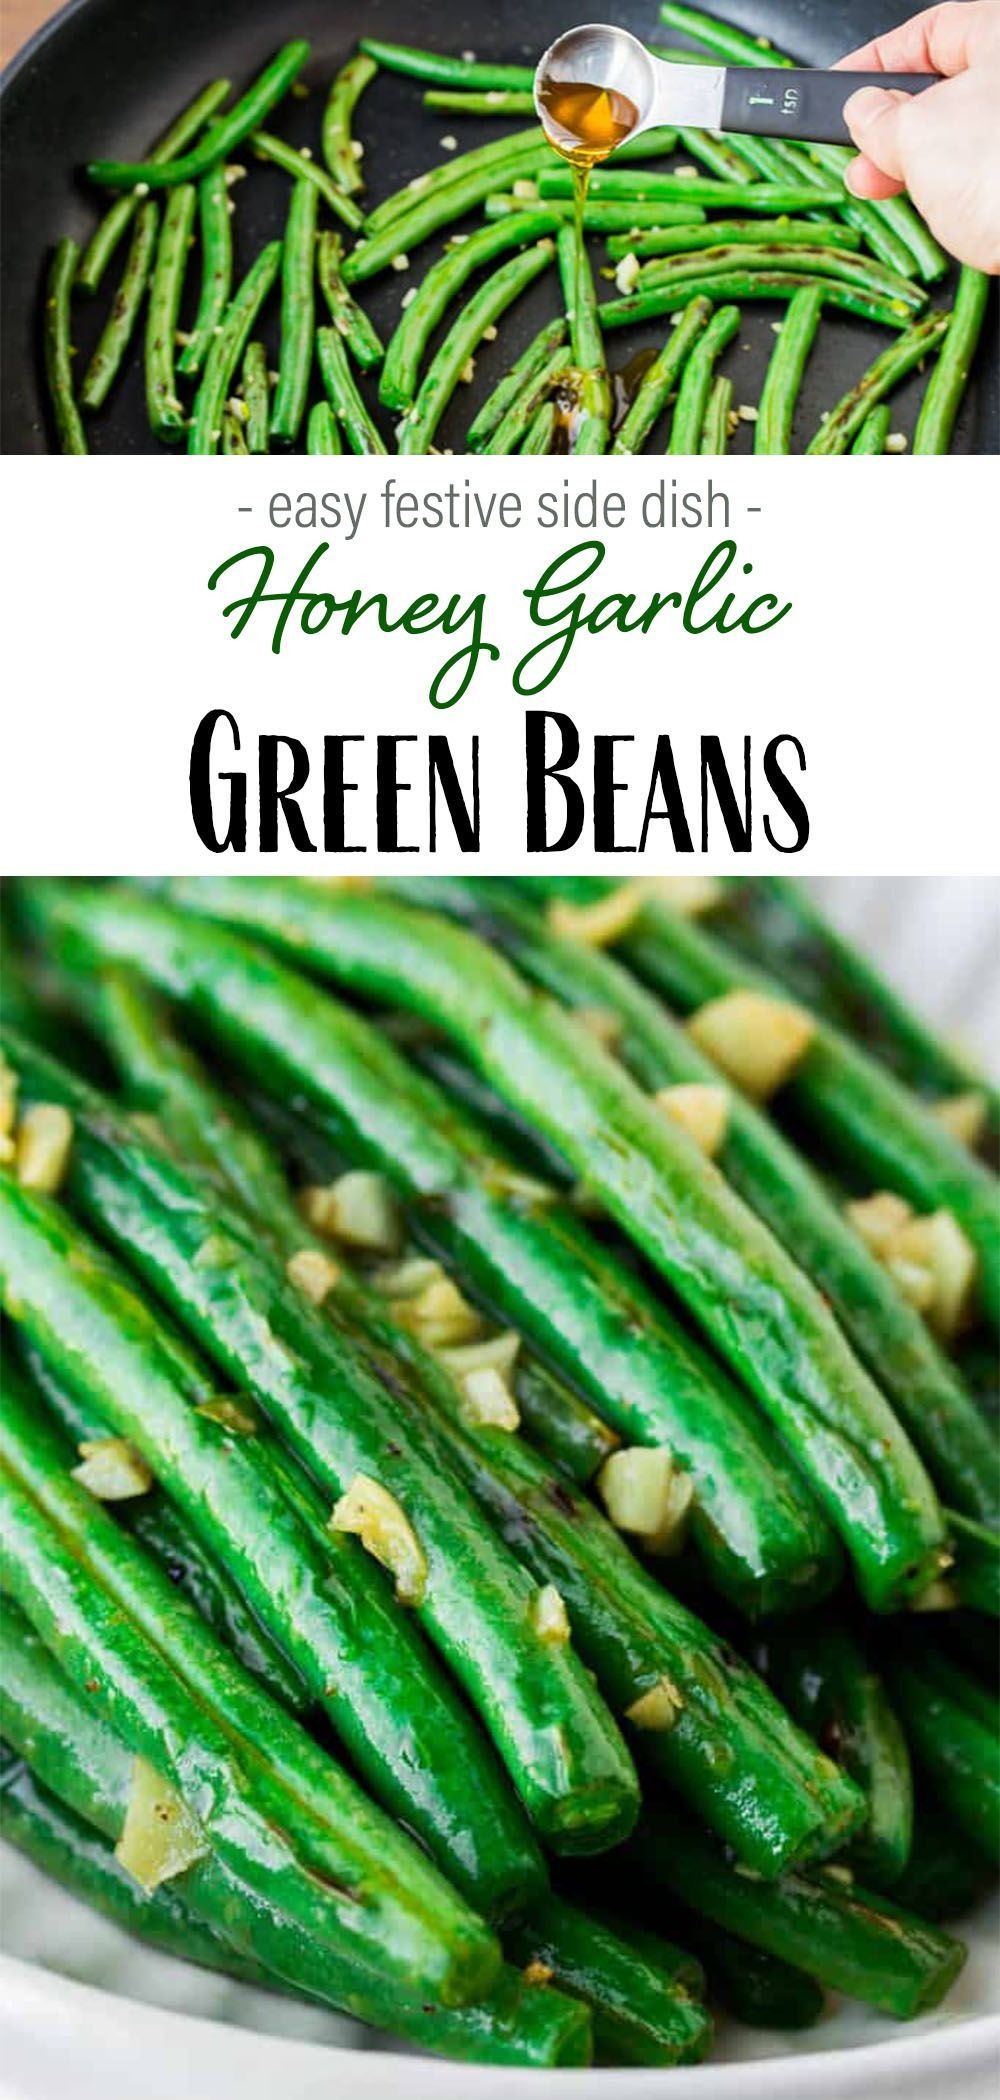 19 thanksgiving sides recipes green beans ideas